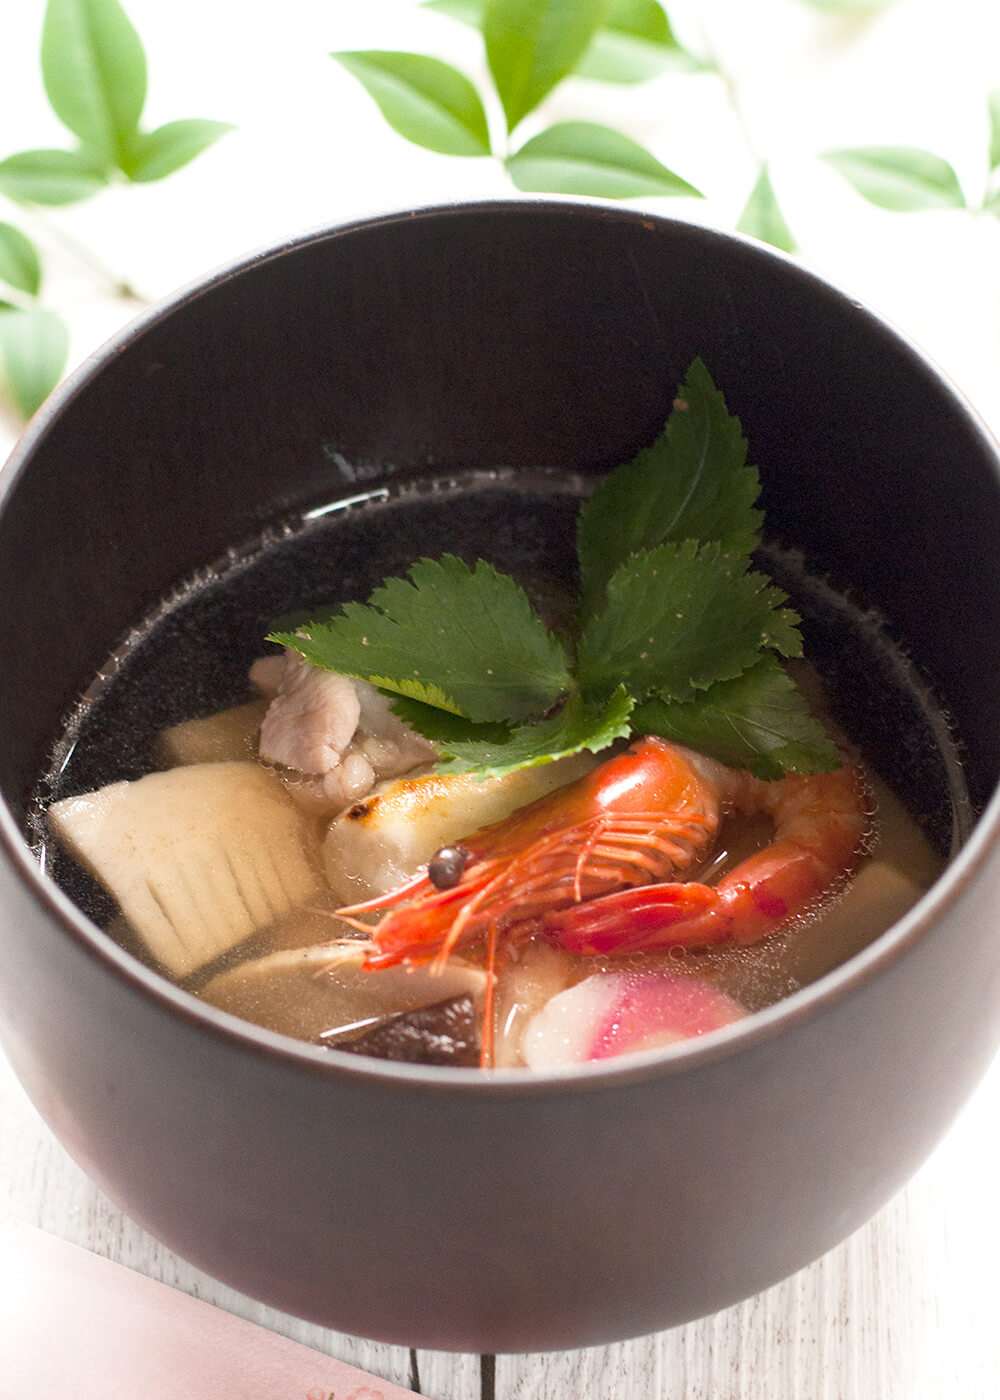 Ozoni is a special dish that most Japanese households serve on New Year's Day. It is a clear soup with cooked rice cakes and colourful ingredients such as prawns, shiitake, and mitsuba (wild Japanese parsley). Ingredients can vary and you can even make it vegetarian.